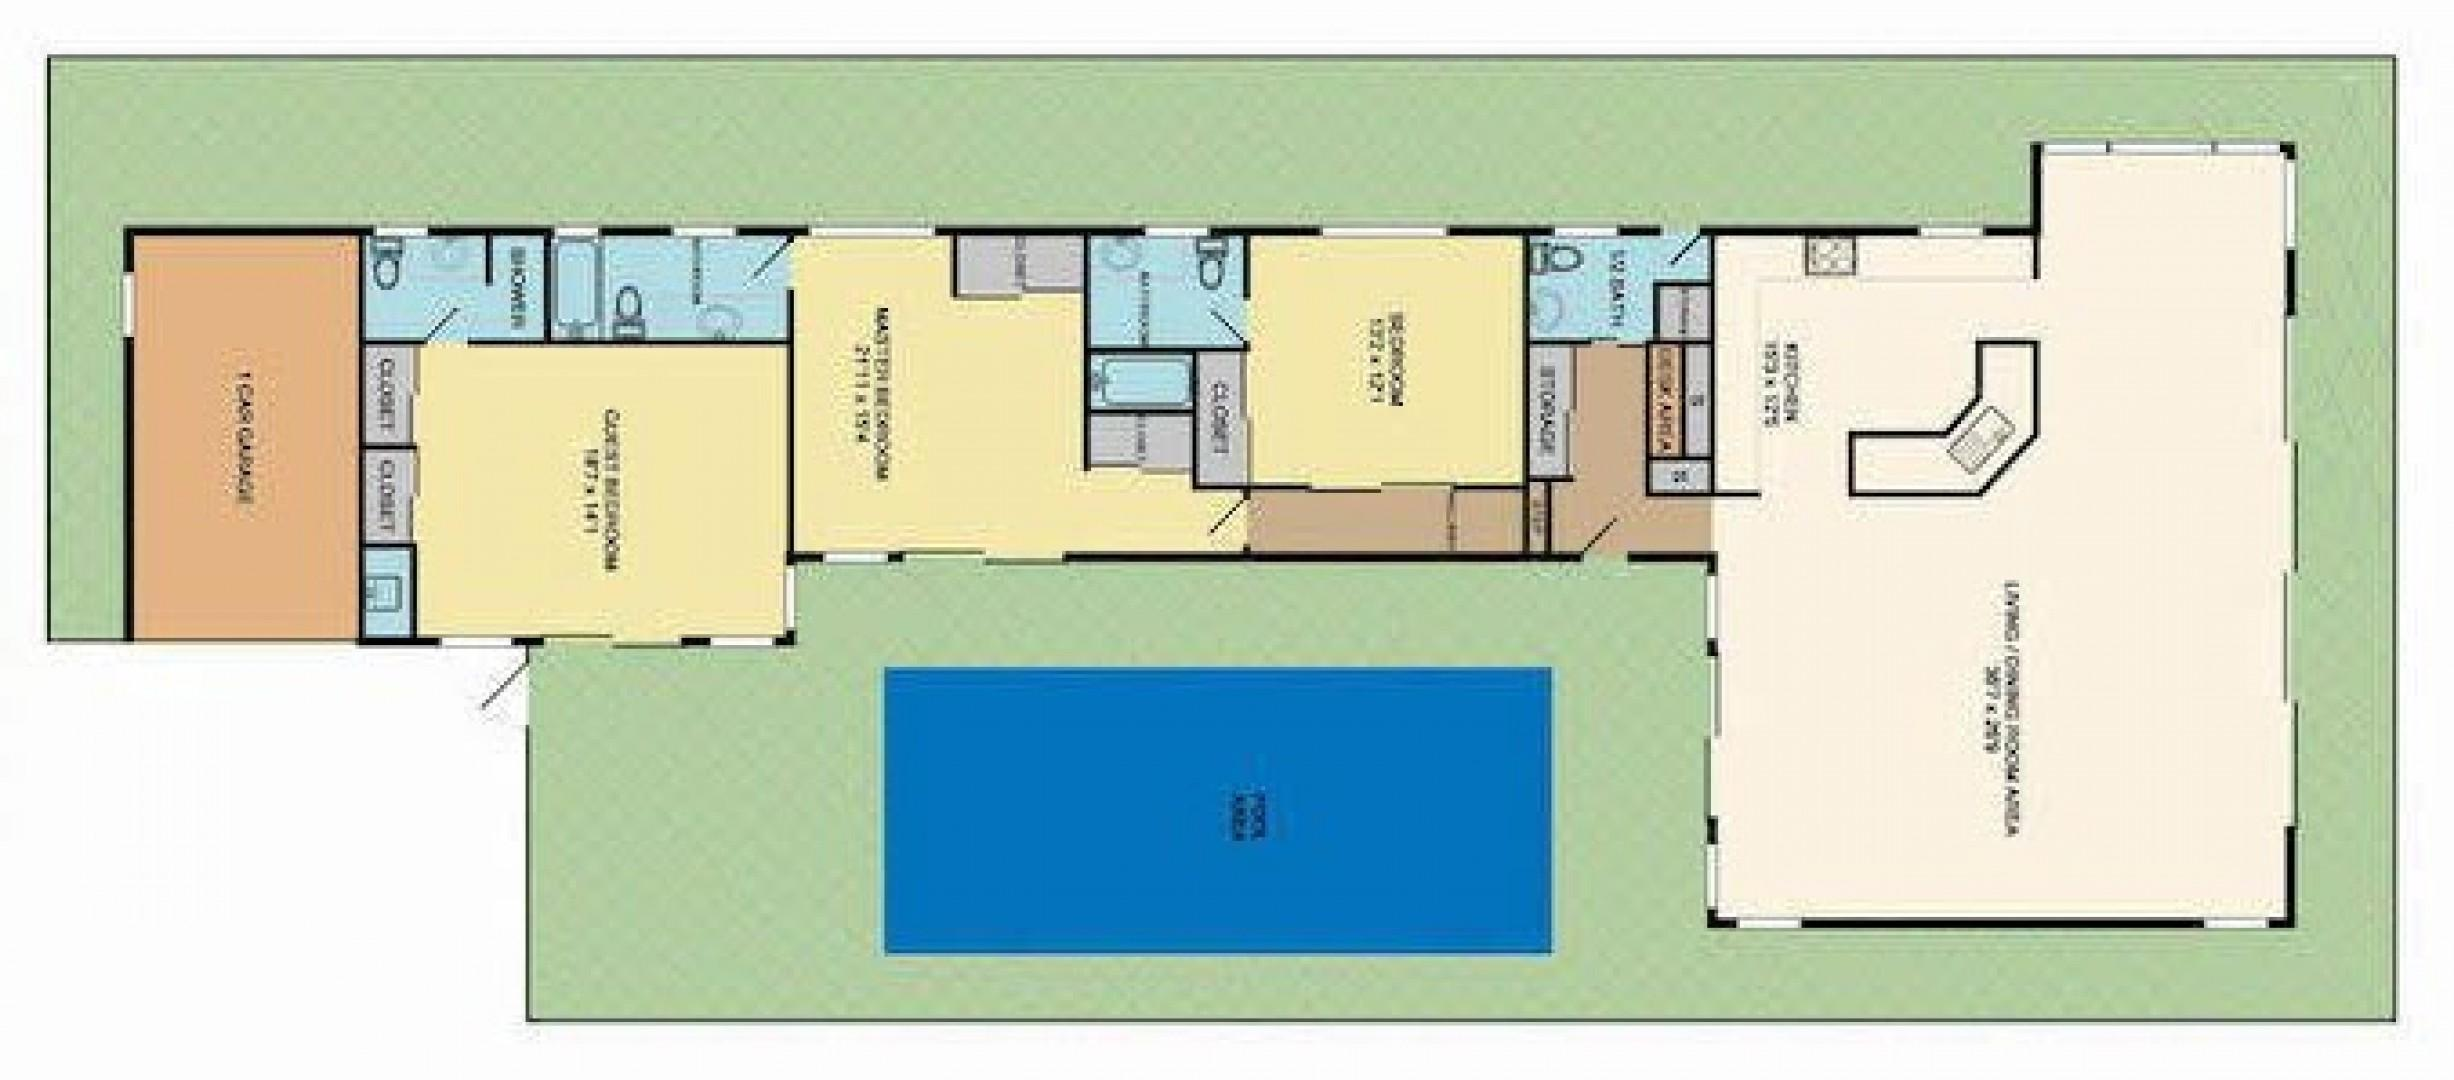 Hale Makai at Diamond Head - Floor Plan